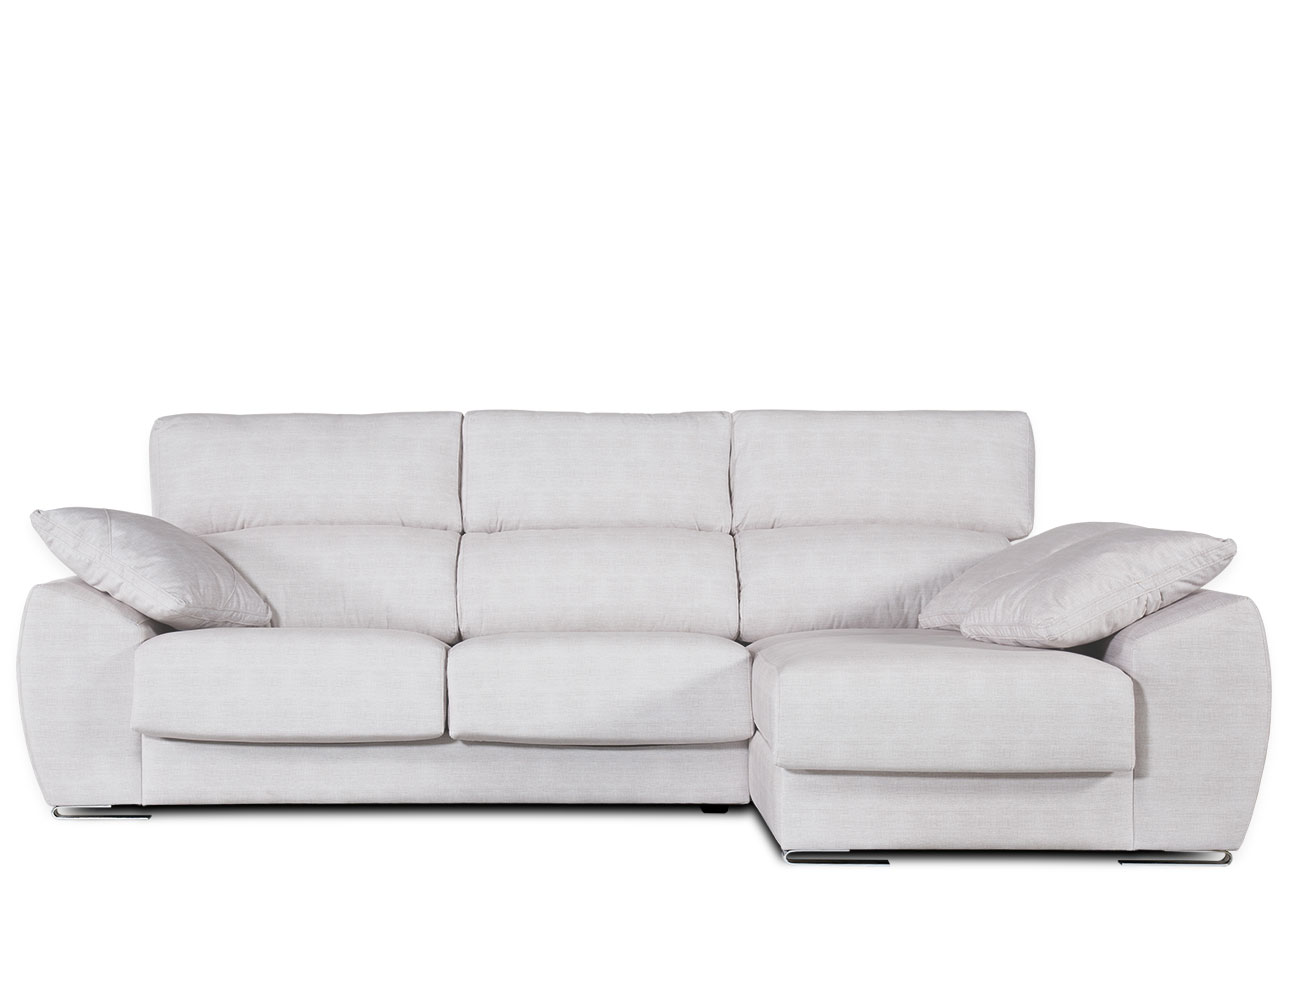 Sofa chaiselongue moderno blanco7